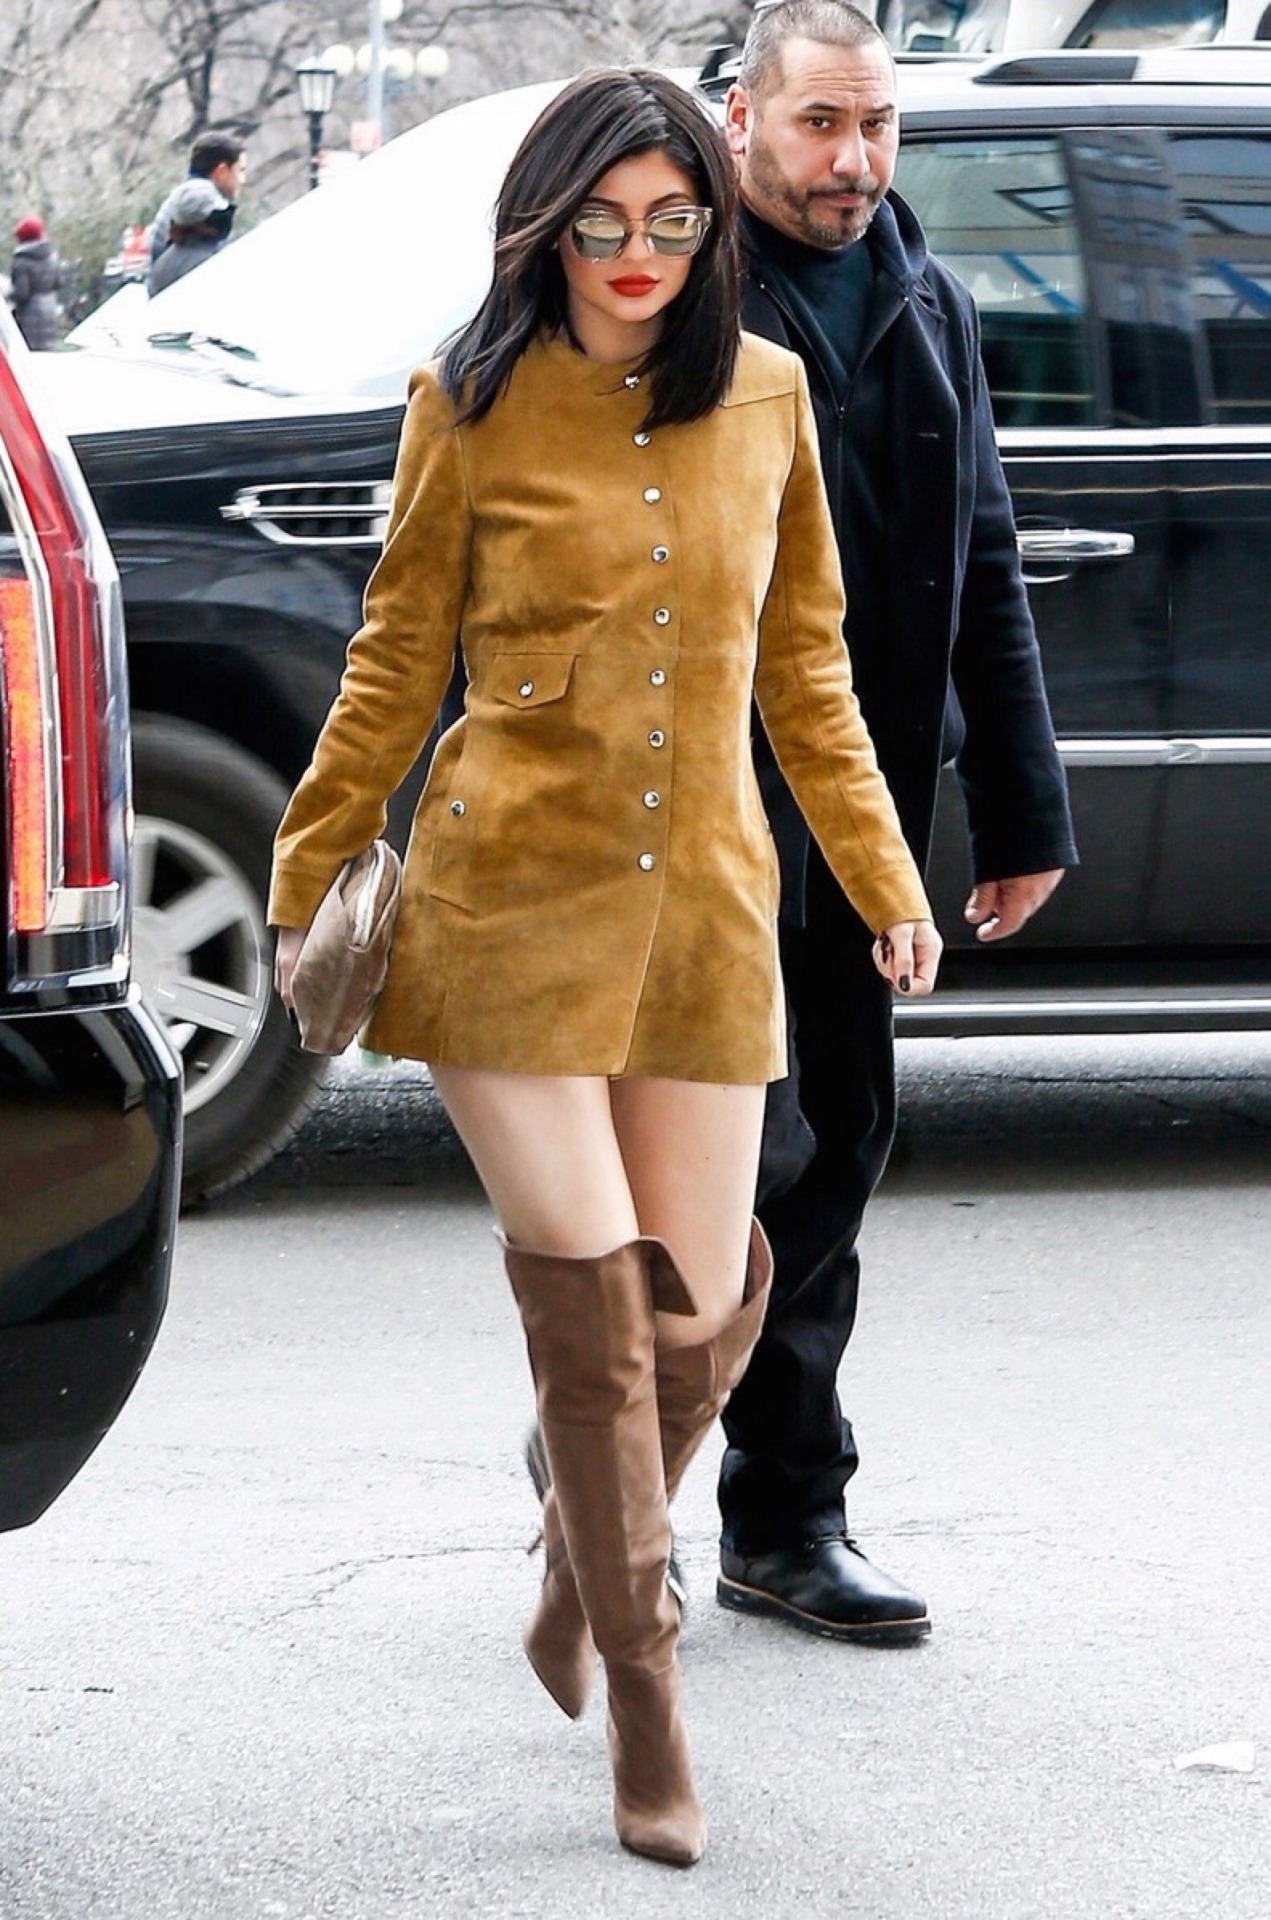 3-Kylie-Jenners-Isabel-Marant-Suede-Button-Jacket-Dress-and-Schutz-Brown-Over-the-Knee-Boots